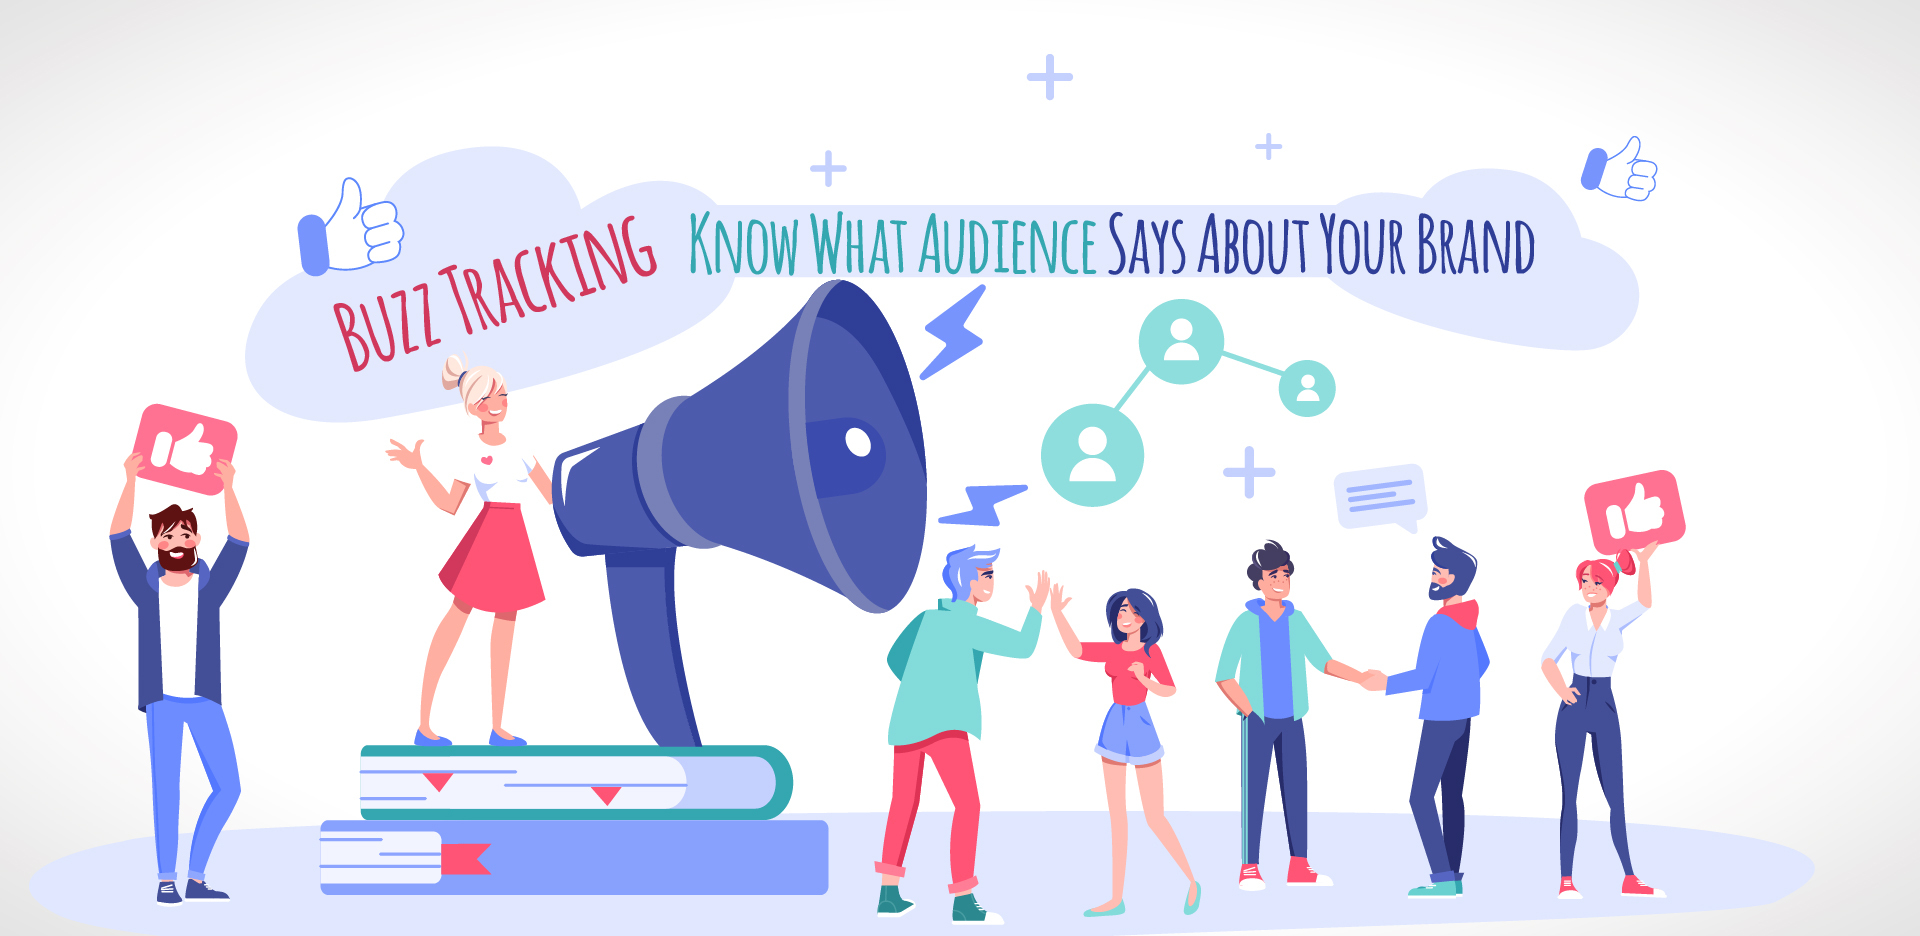 Buzz Tracking- Know What Audience Says About Your Brand